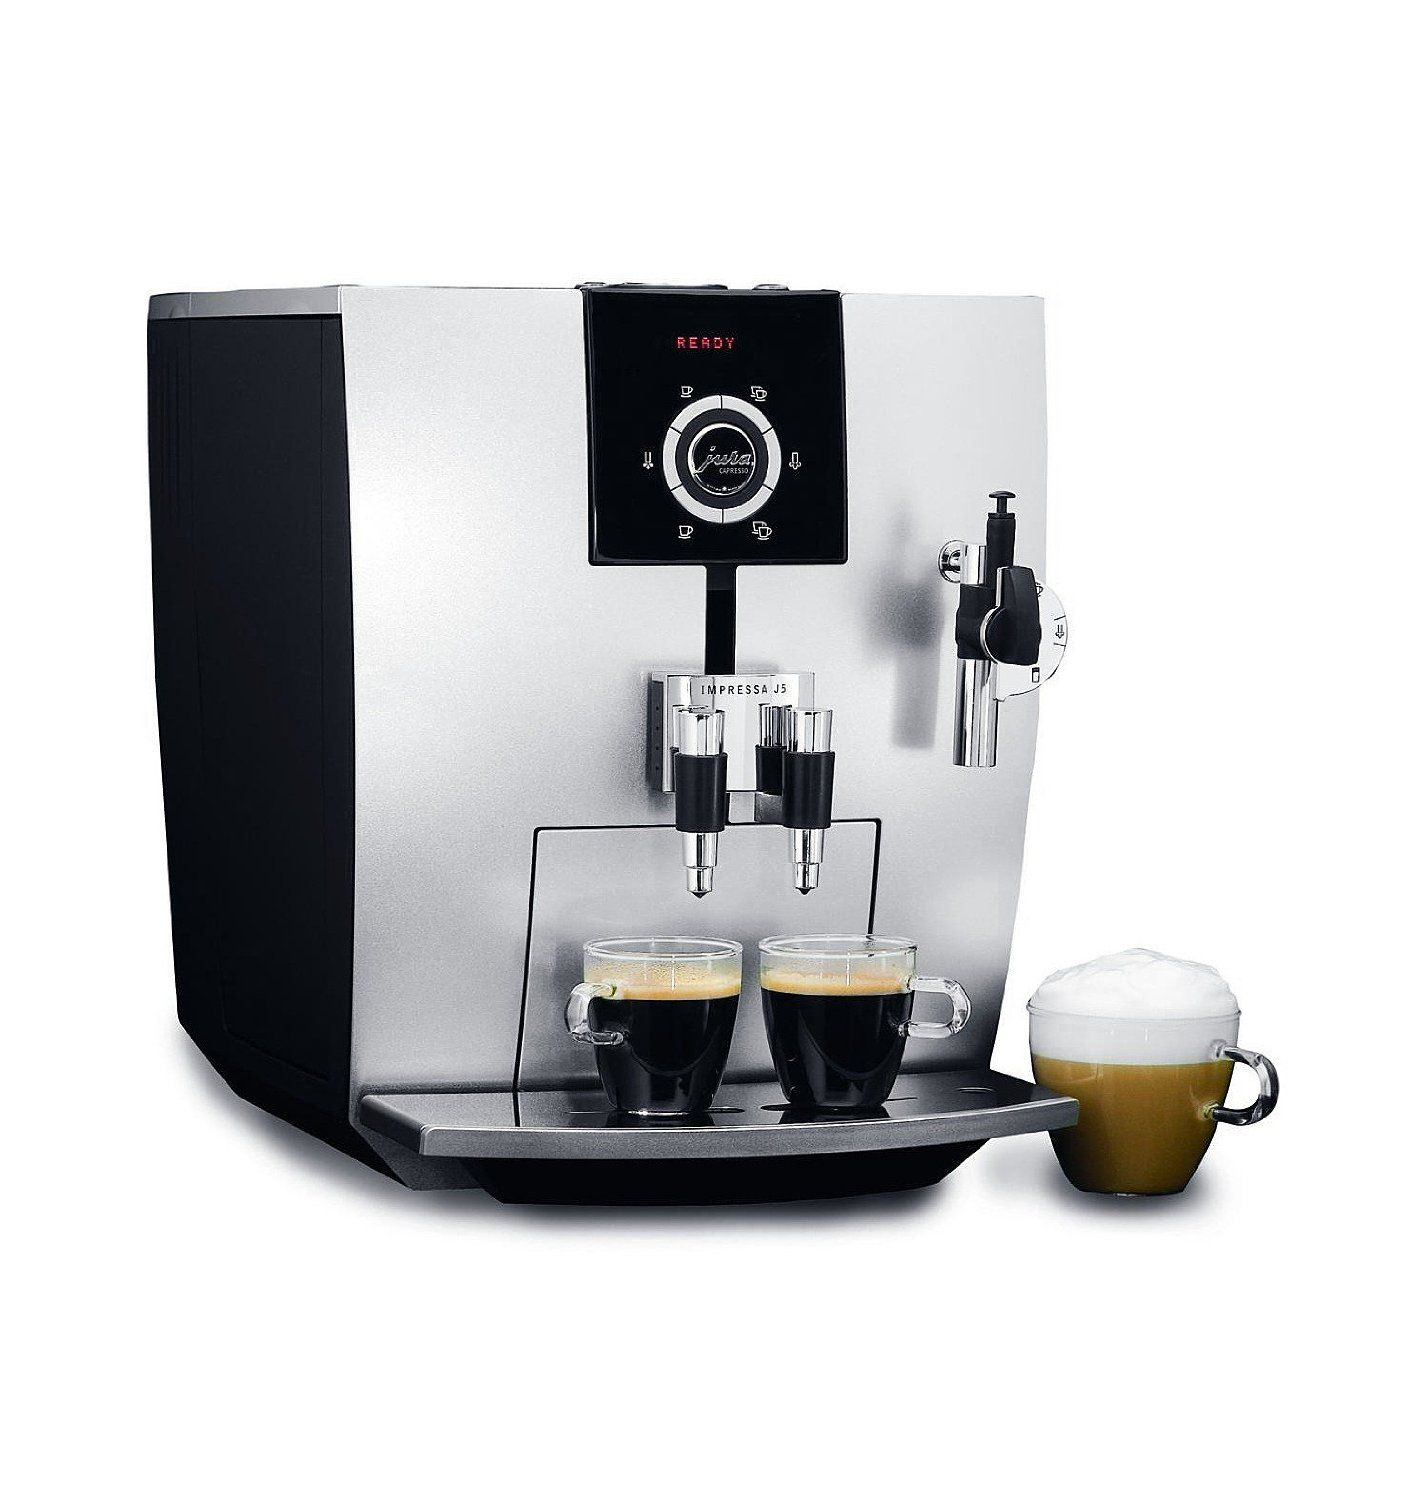 Jura 13332 Impressa J5 Automatic Coffee and Espresso